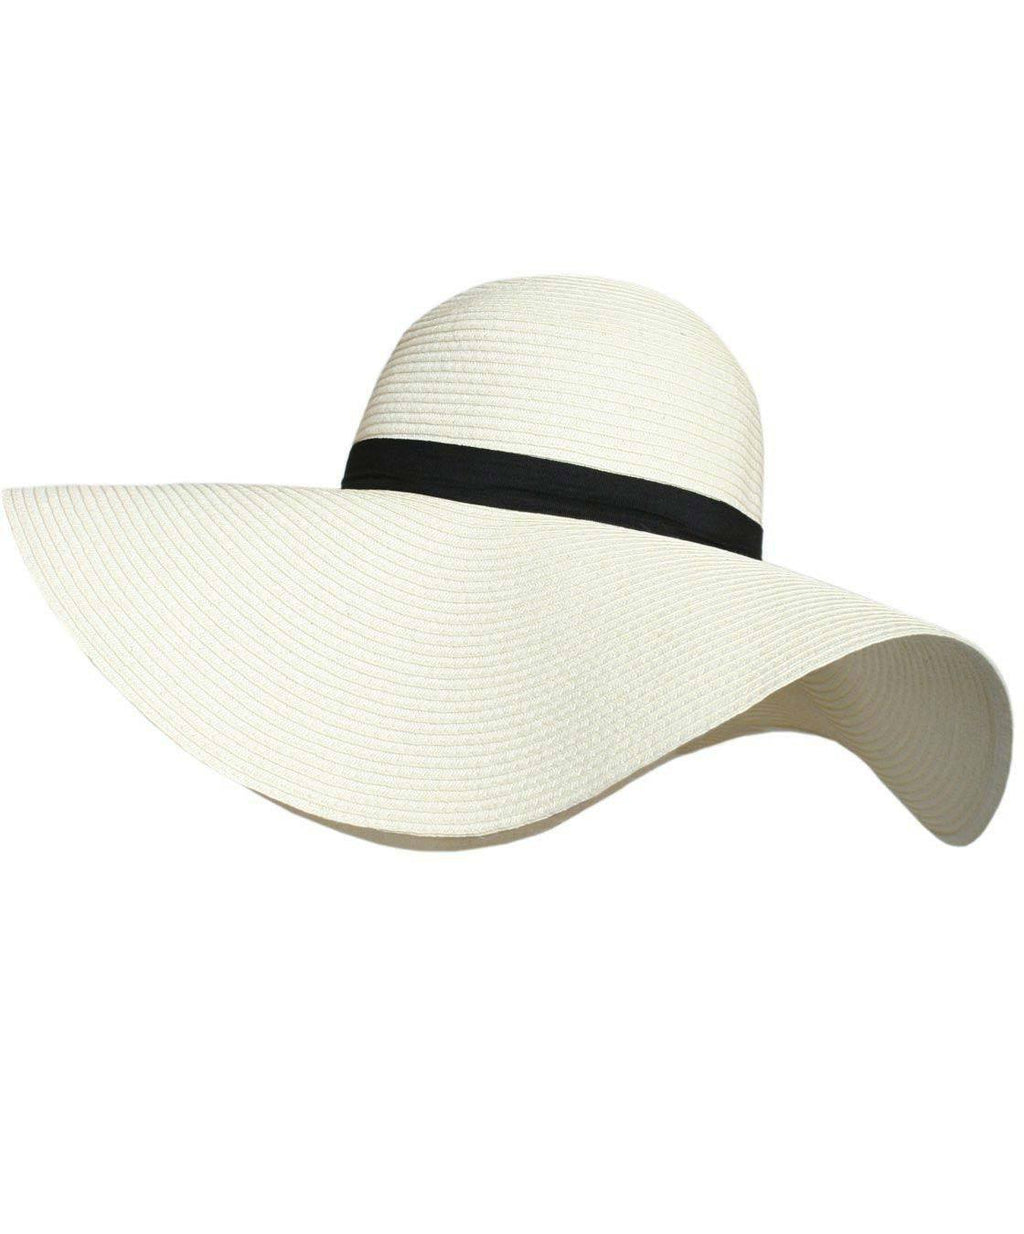 Wide Brim Straw Floppy Hat in Cream FRONT